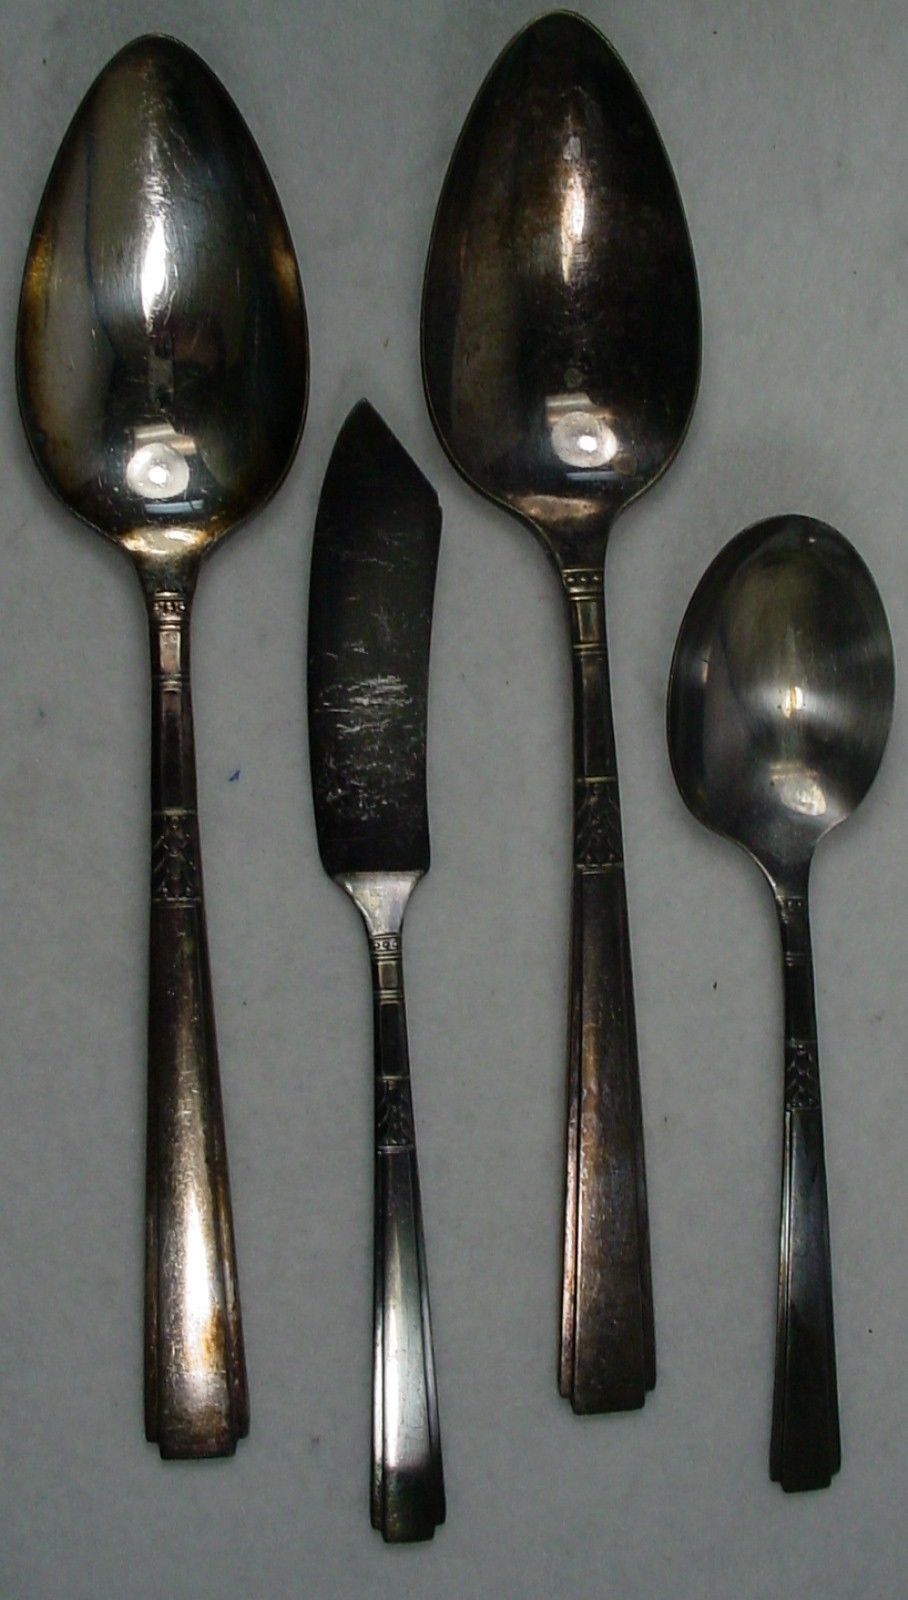 ONEIDA silver CAPRI 1935 silverplate 4-pc HOSTESS SERVING Set